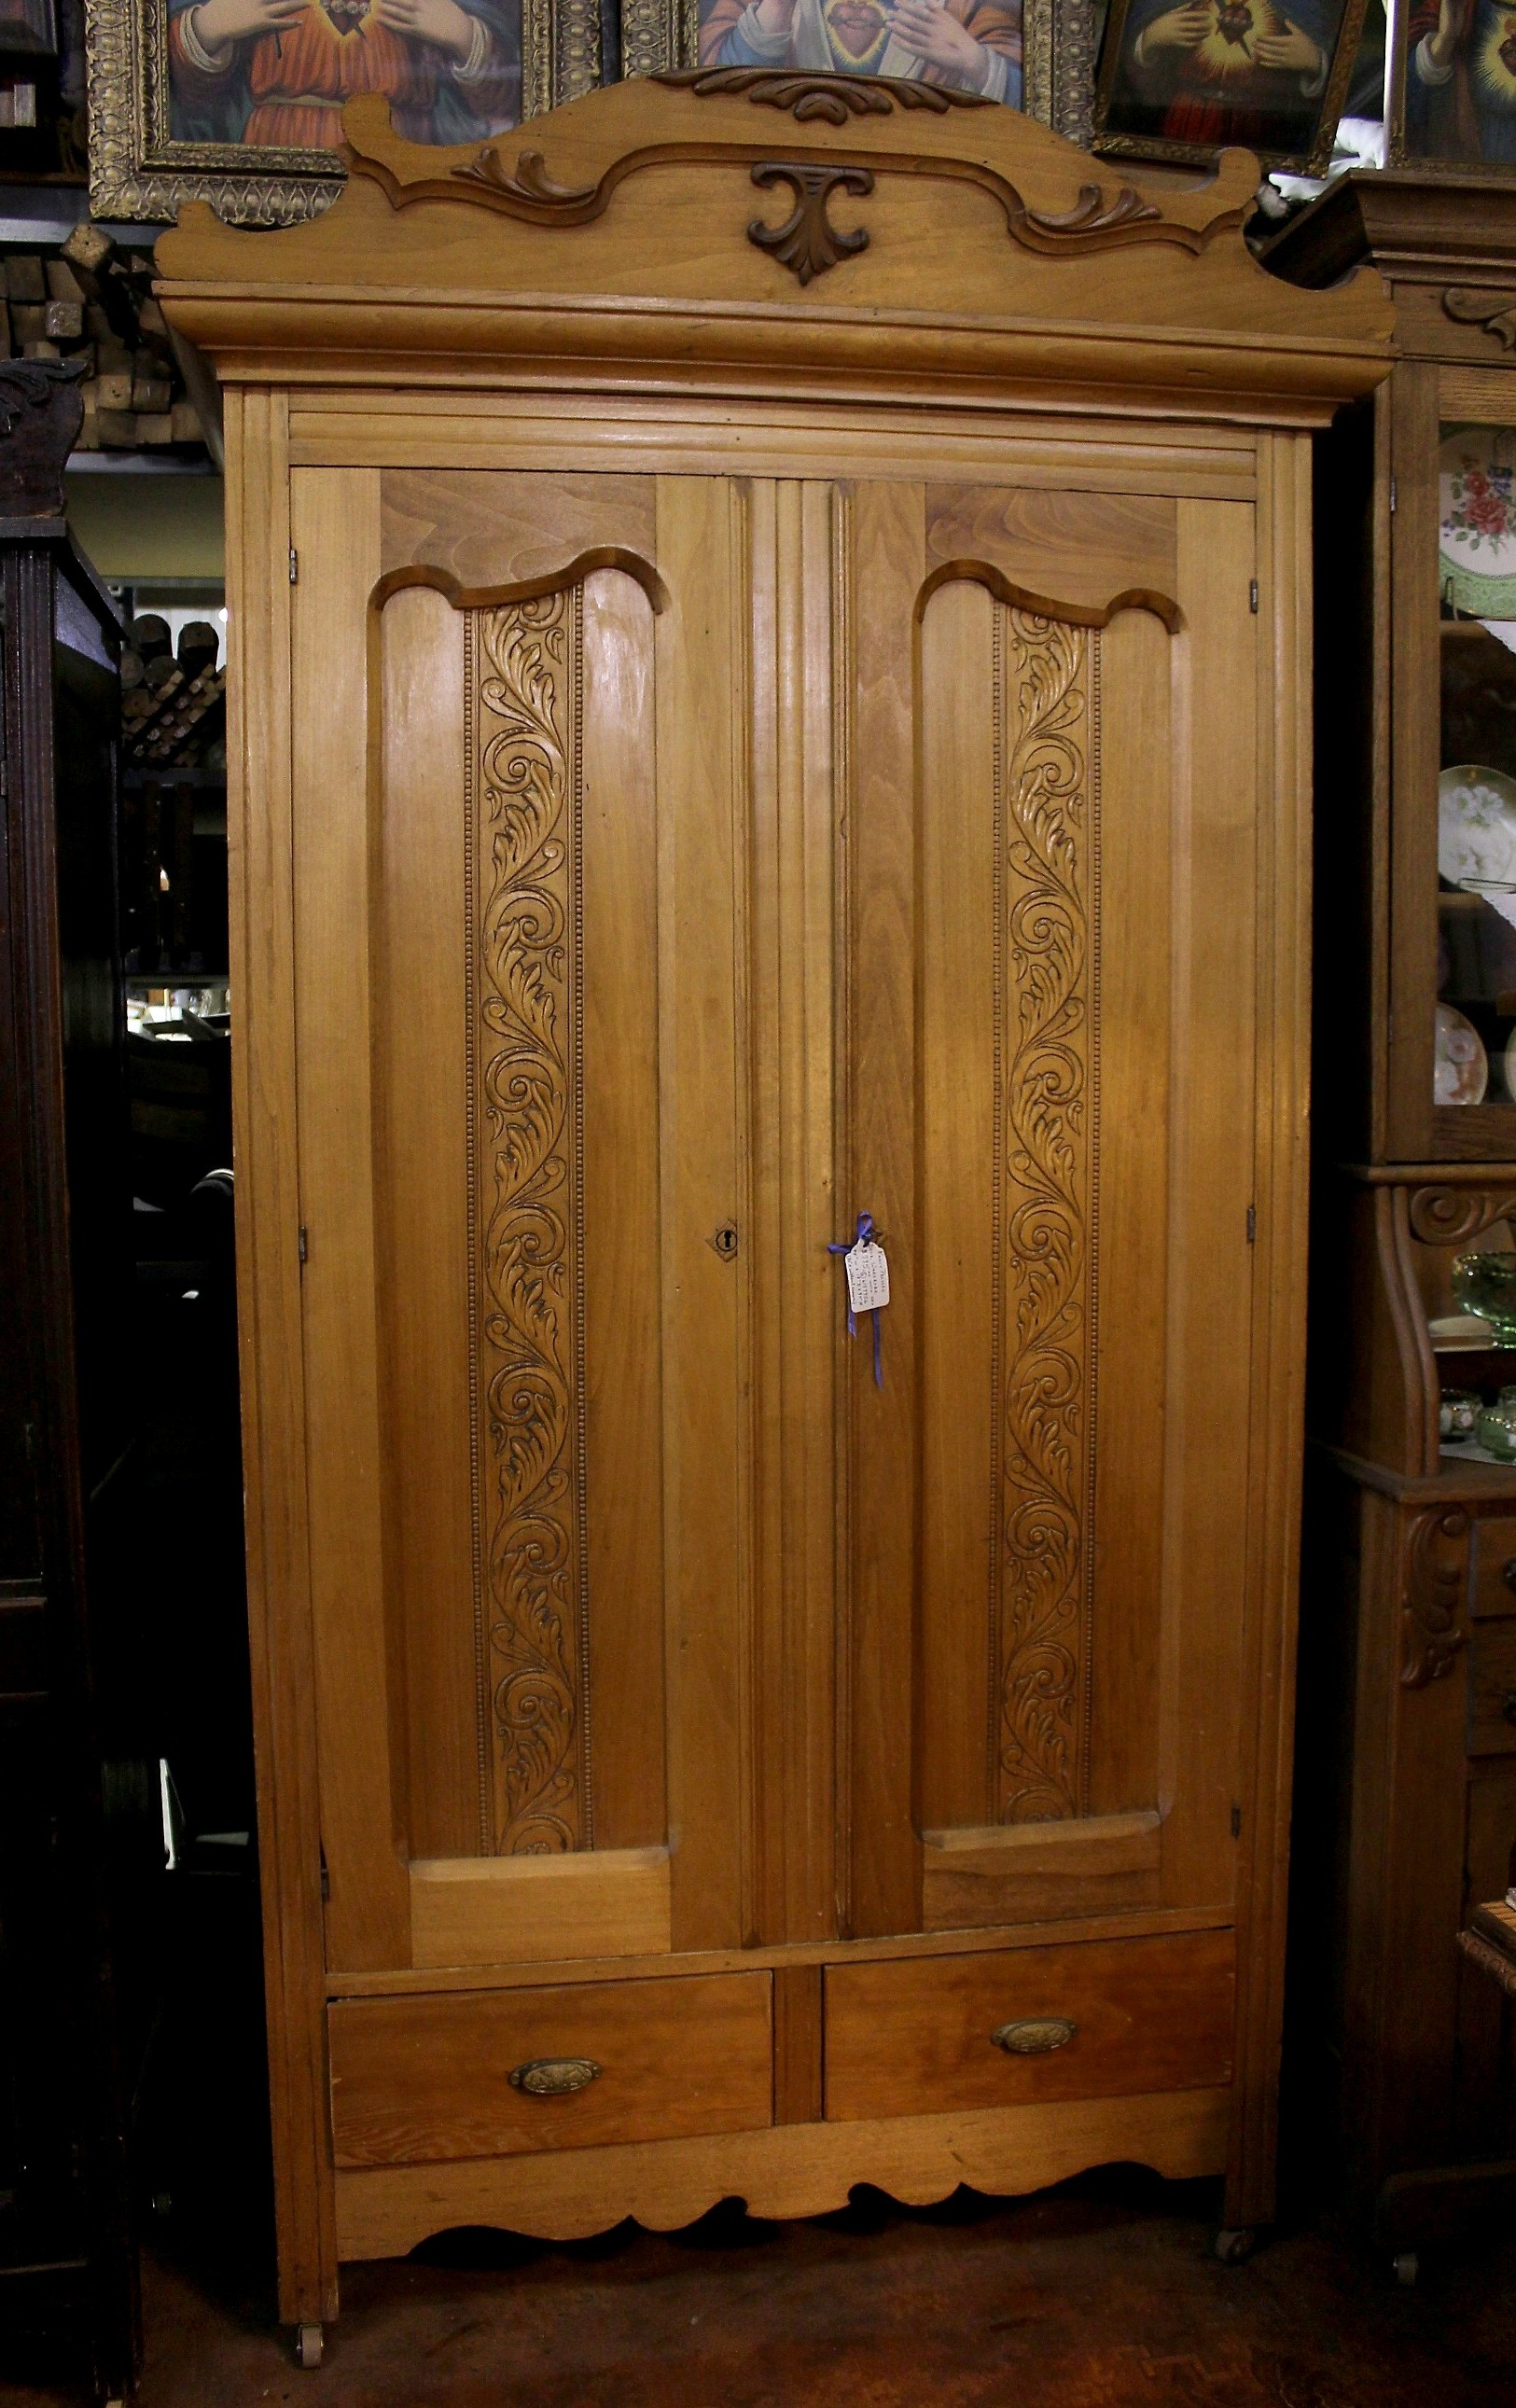 2581 #6C3E14  Wood Wardrobe Armoire Ornate Pressed Scalloped Doors With 2 Drawers picture/photo Ornate Front Doors 39791625